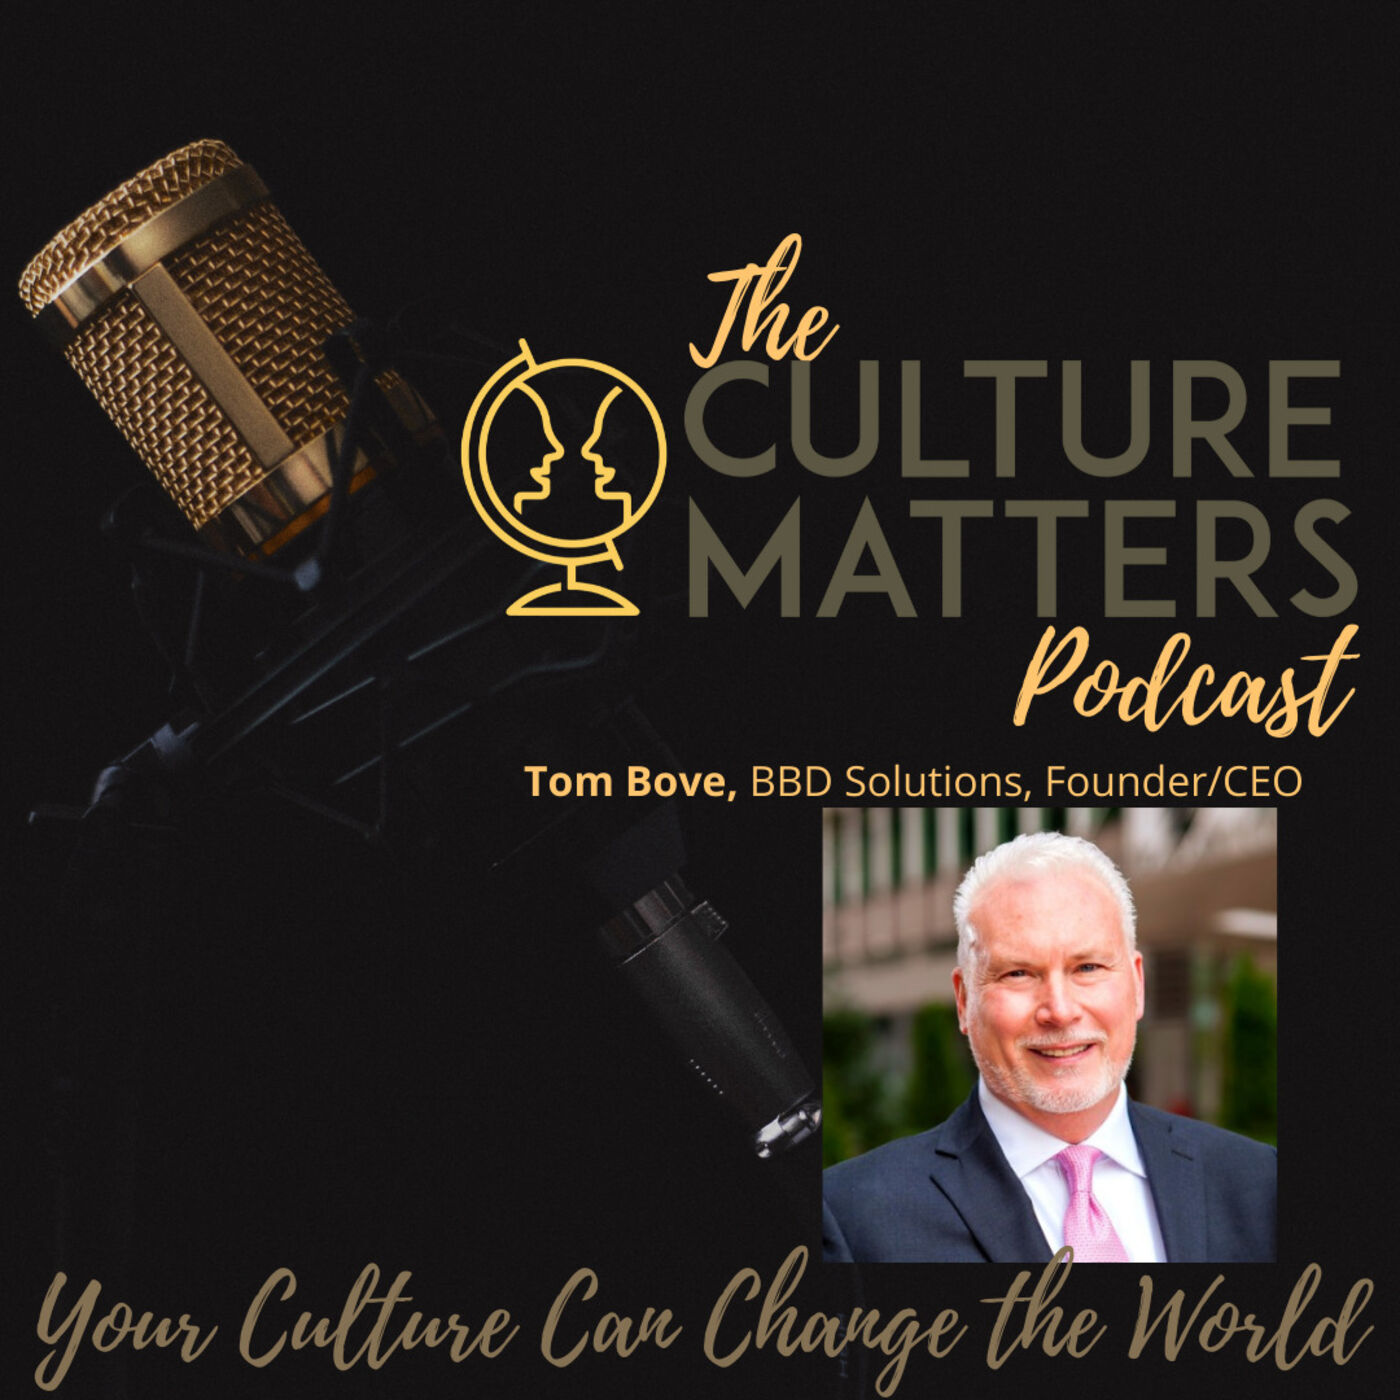 Season 7, Episode 75: Guest: Tom Bove: The Only Constant is Change